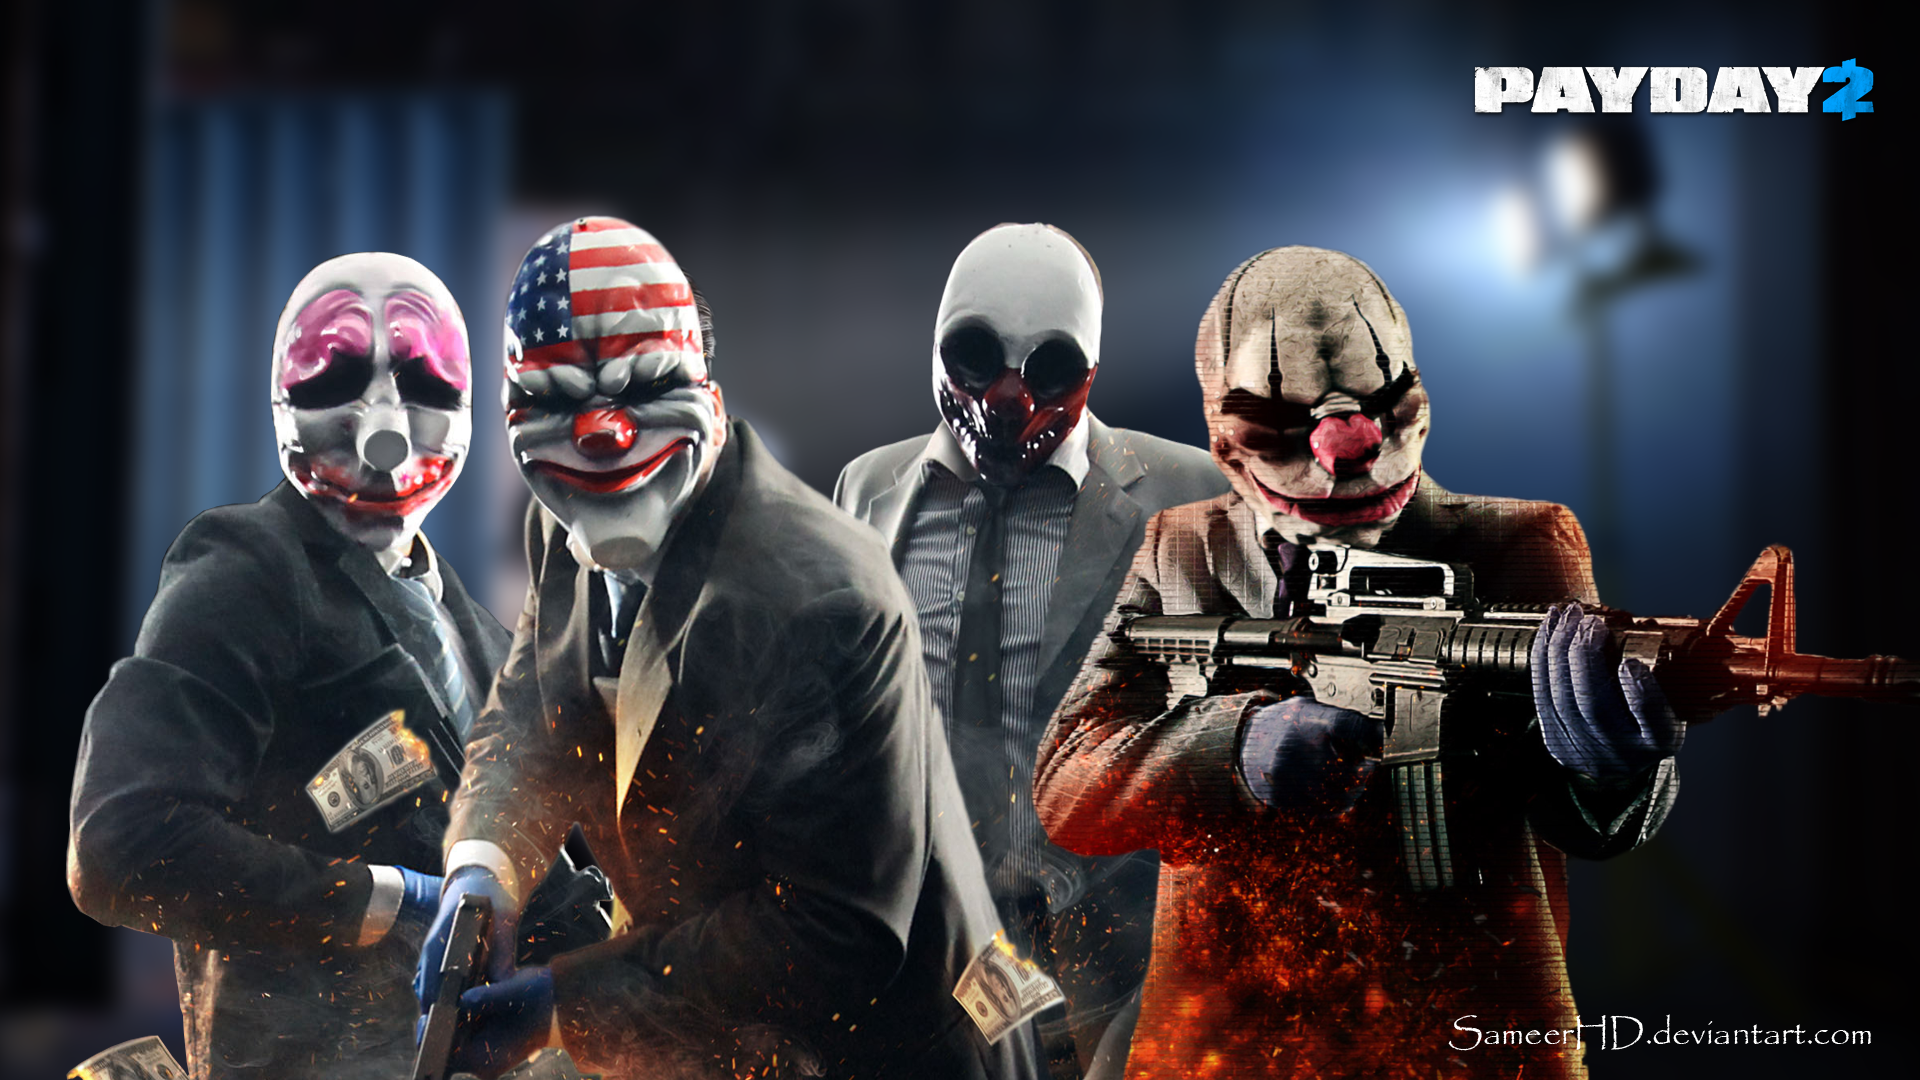 how to play payday2 on mac